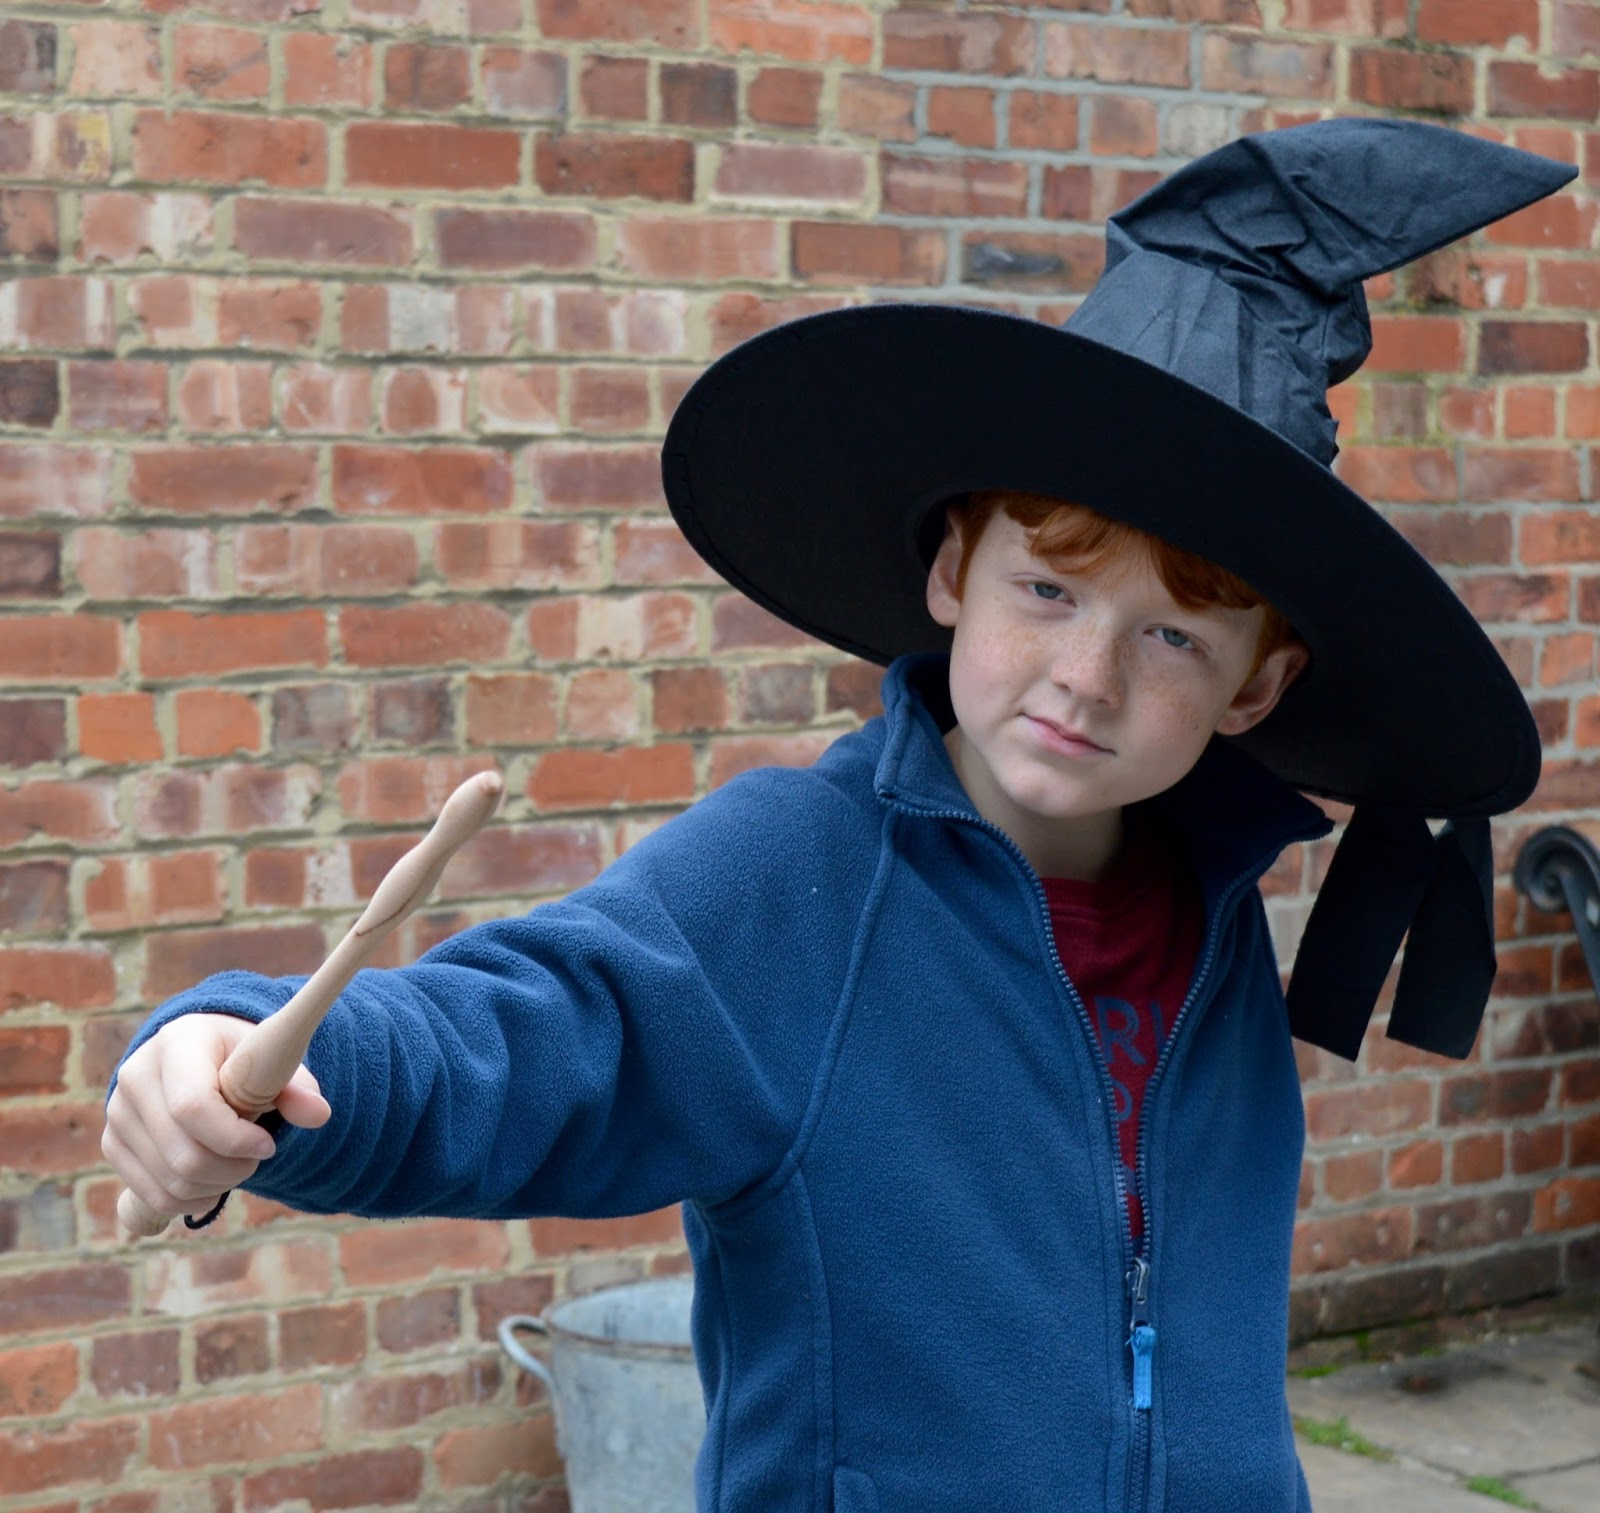 Half Term Hocus Pocus at Preston Park | The North East's very own Diagon Alley - spells and wands